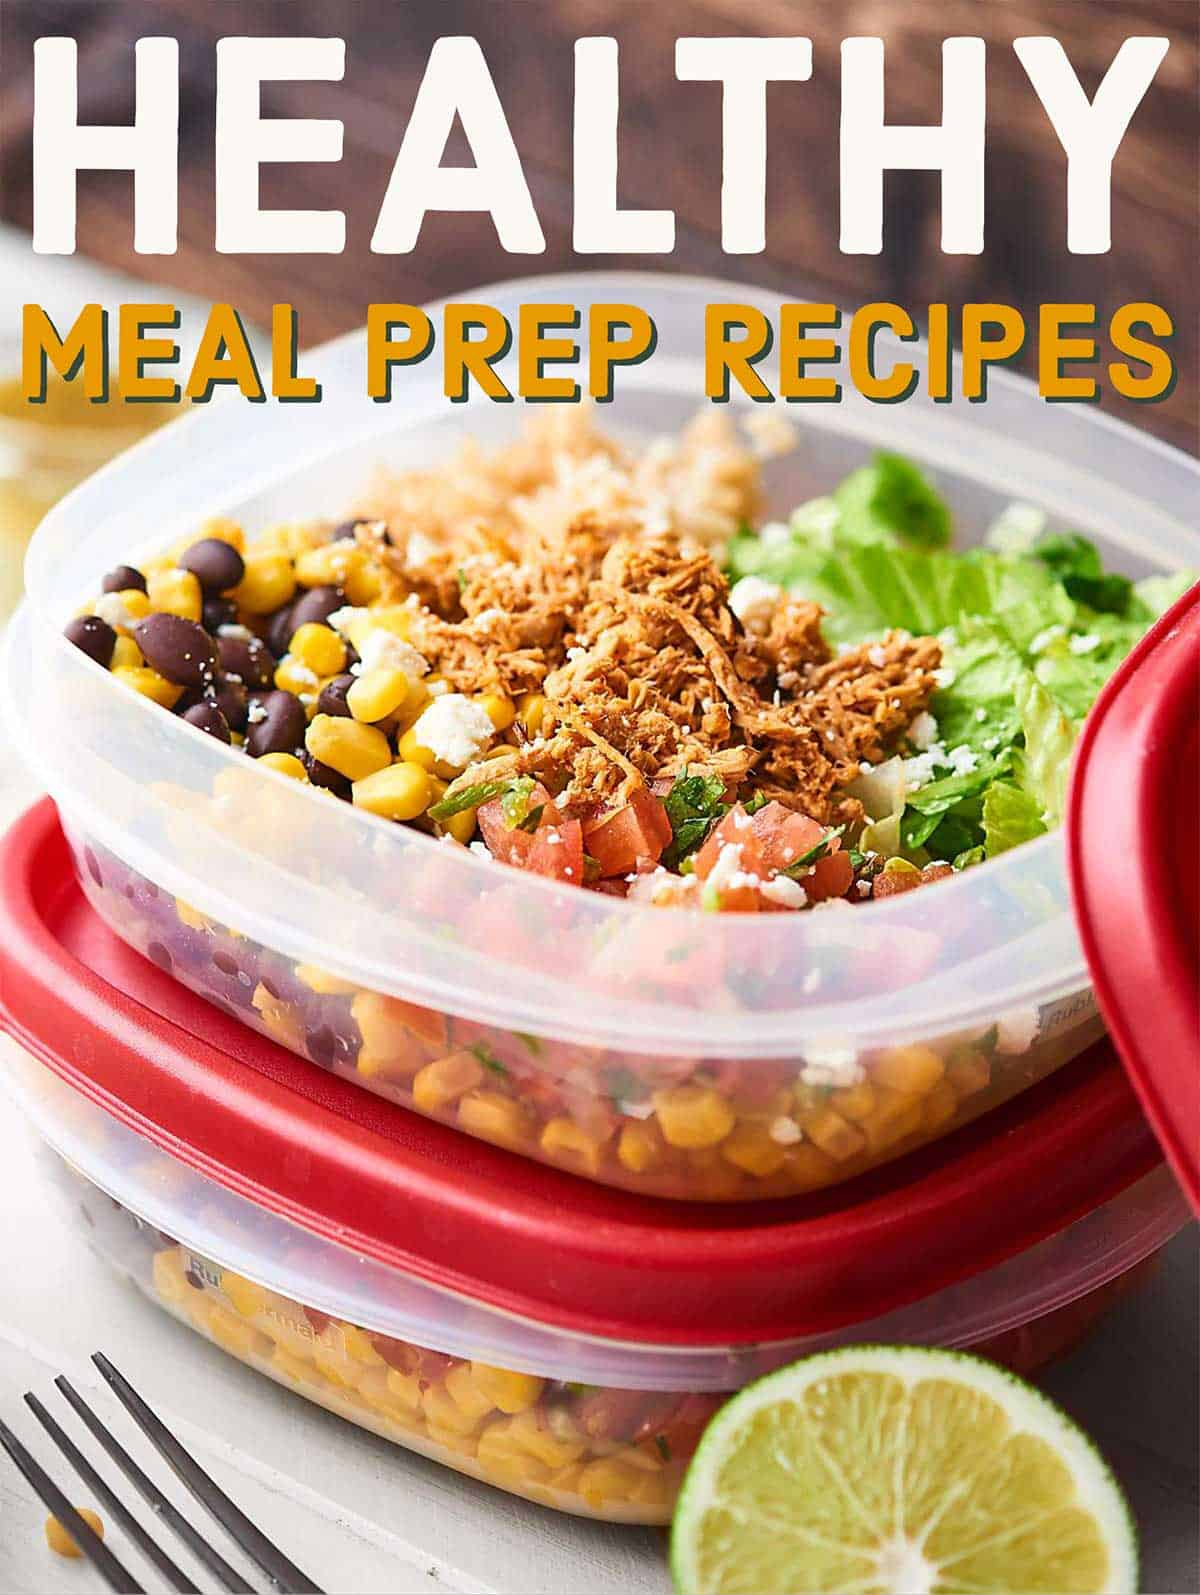 Healthy meal prep recipes 2018 show me the yummy healthy meal prep recipes 2018 recipes for breakfast lunch snacks dinner forumfinder Image collections